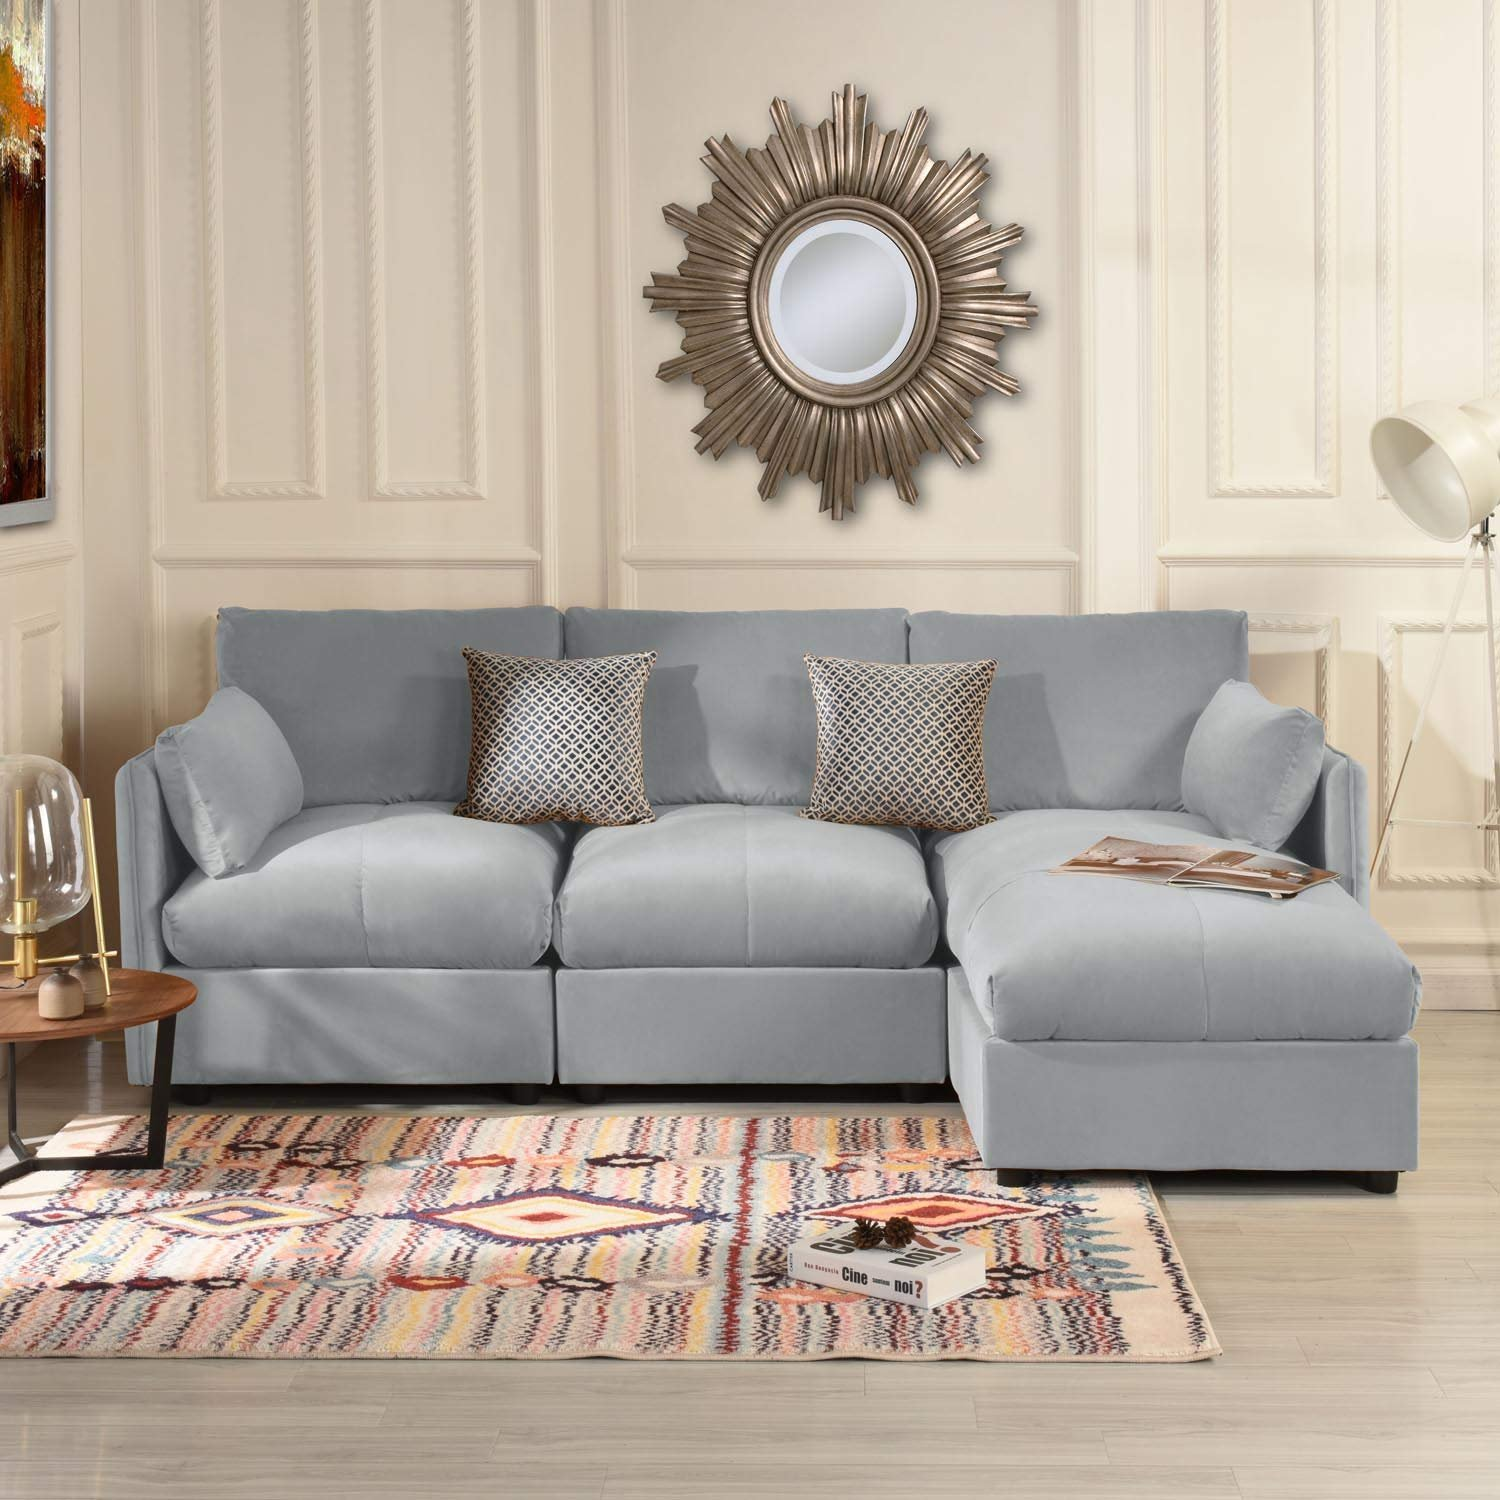 Details About Modern Living Room Velvet L Shape Couch Sectional Sofa Right Facing Chaise Grey